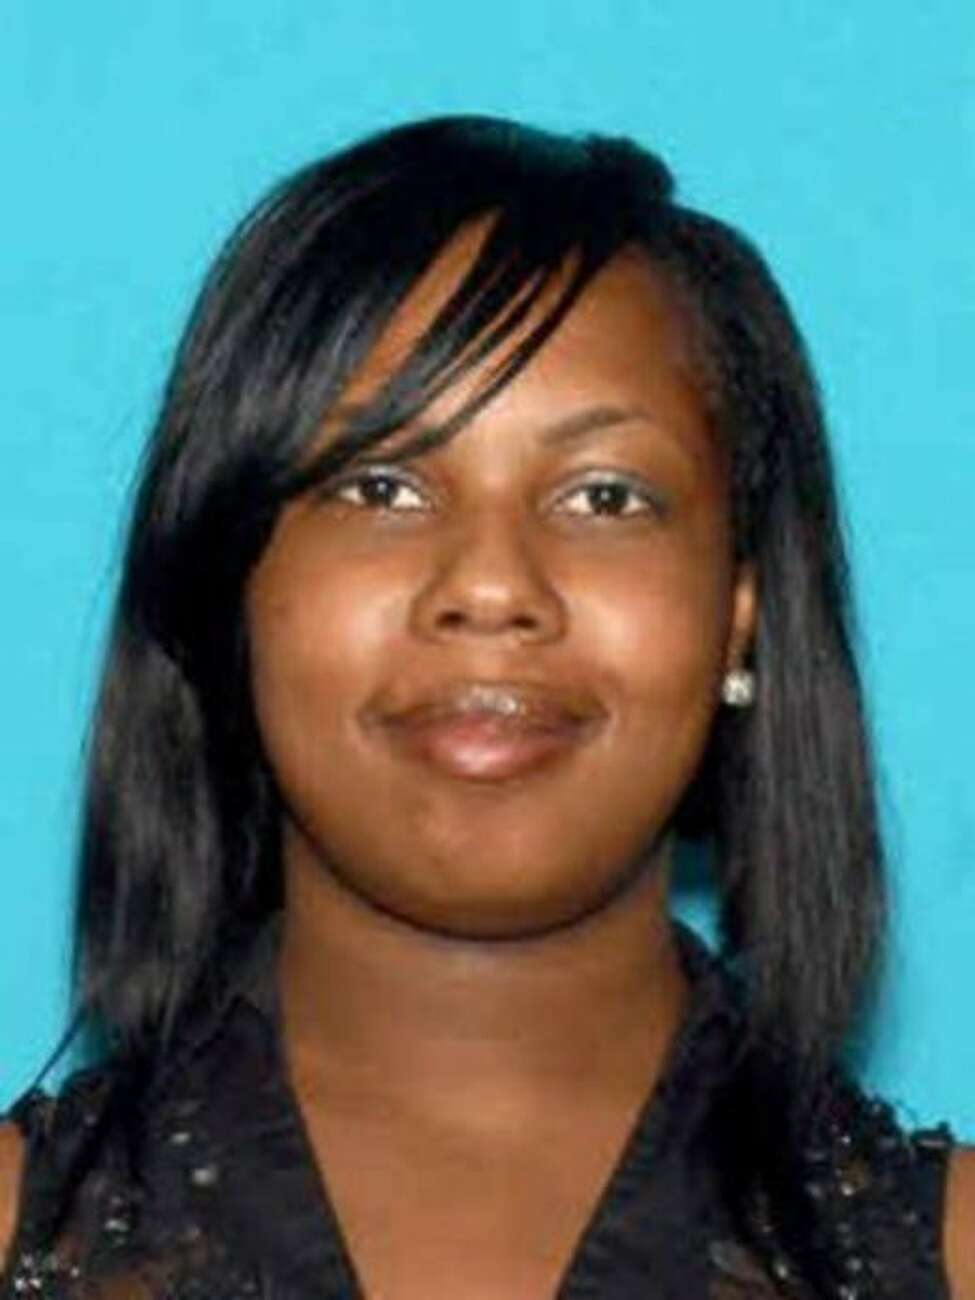 Shanika S. Minor Minor is wanted for allegedly killing a Milwaukee woman who was 9 months pregnant. She was placed on the list June 28, 2016.